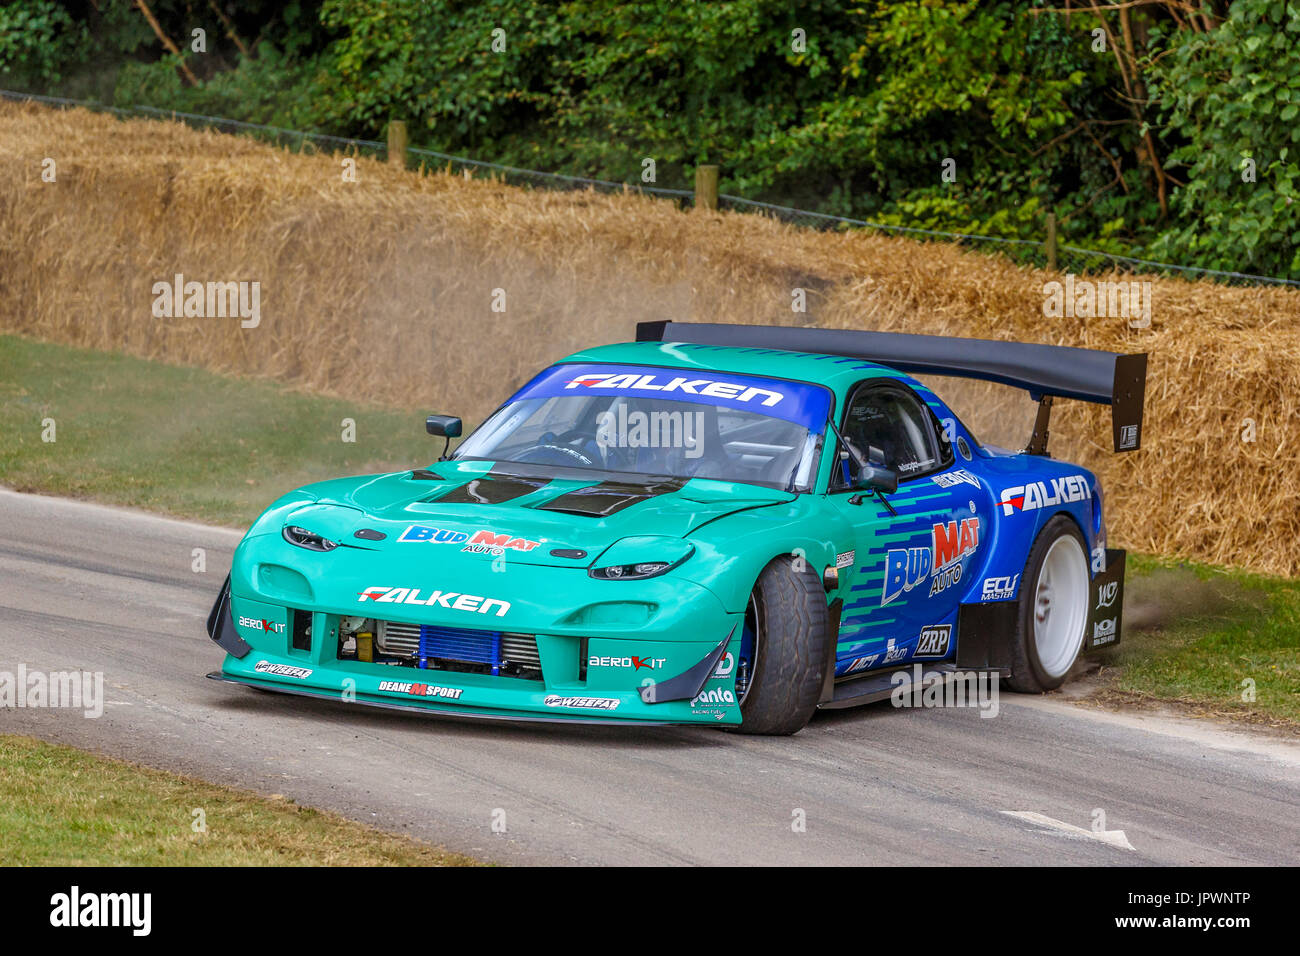 2018 Mazda Rx7 >> 1999 Mazda RX-7 drift car with driver James Deane at the 2017 Stock Photo: 151771334 - Alamy